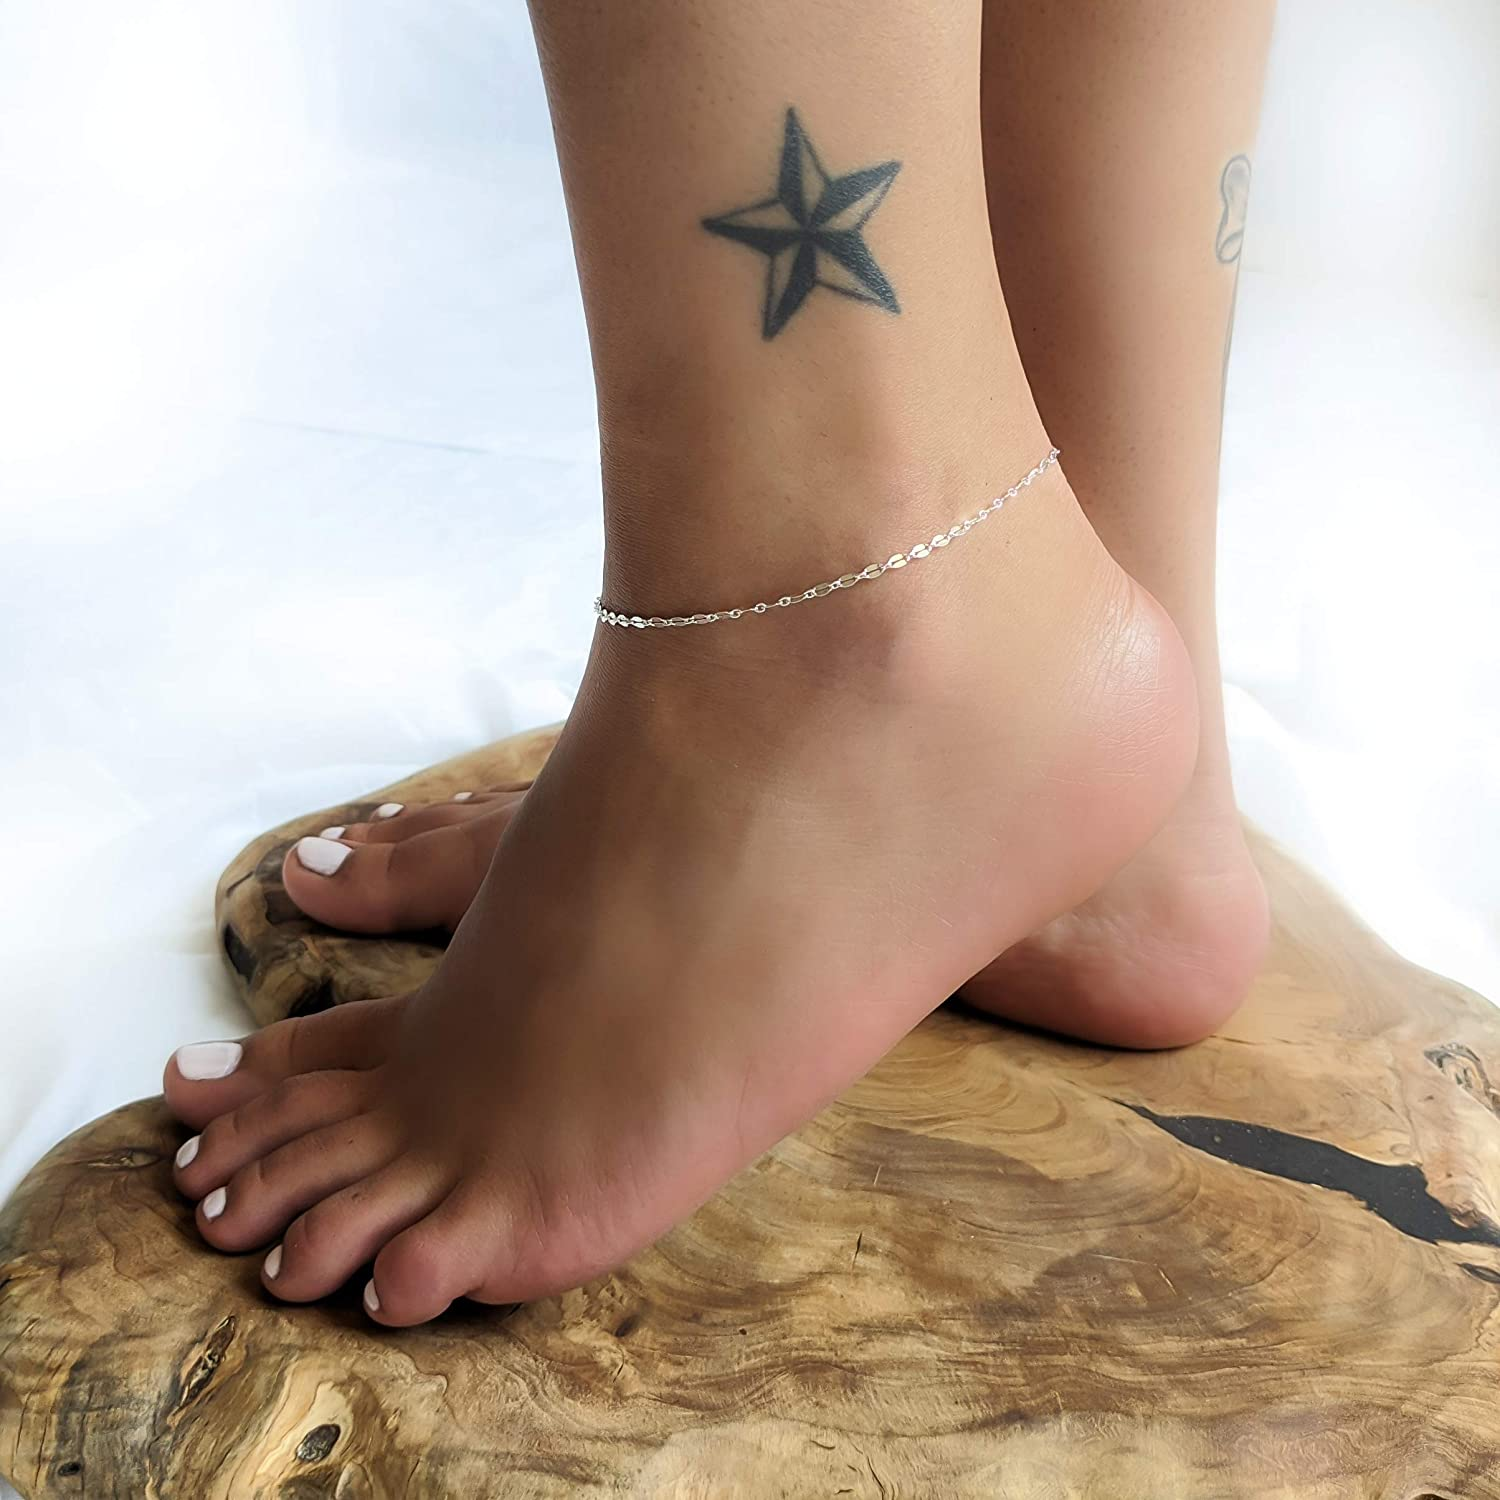 Unique Dainty Lace Chain Ankle Bracelet for Women Handmad of Sterling Silver Silver Anklet Summer Foot Jewelry by Annikabella